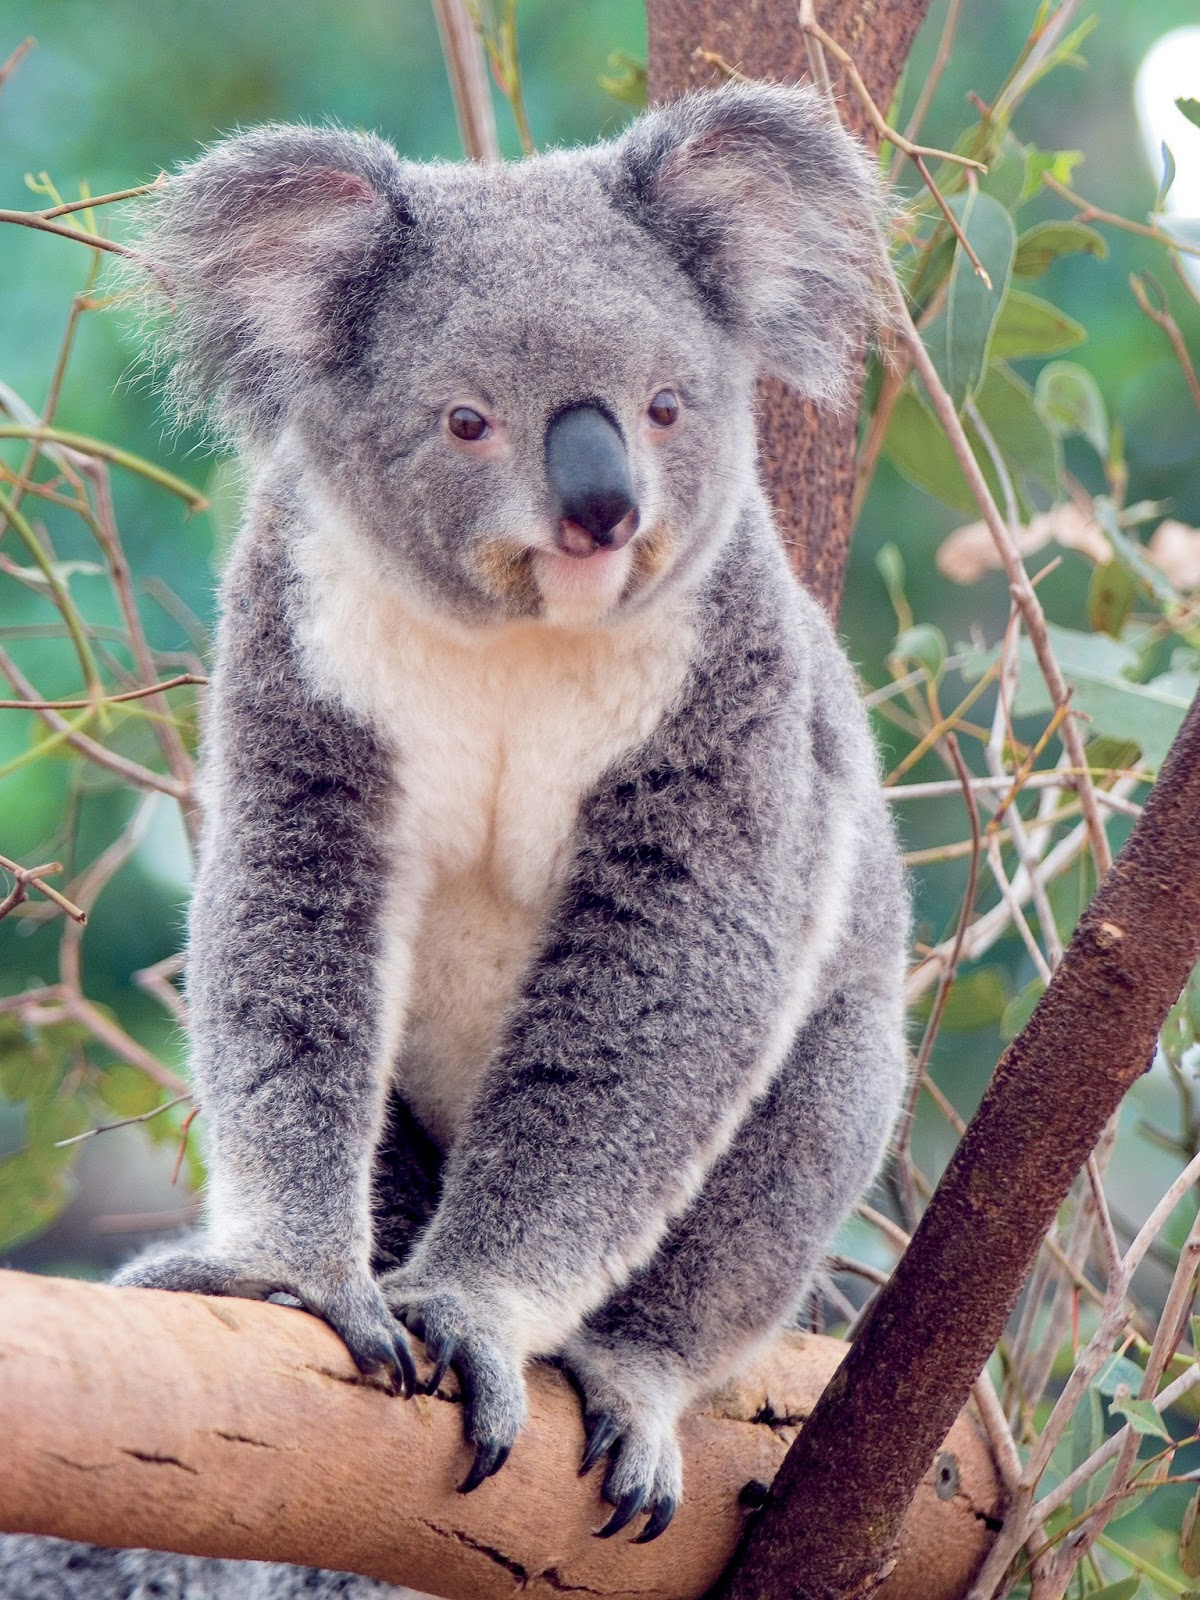 koala animal interesting facts latest pictures all wildlife photographs. Black Bedroom Furniture Sets. Home Design Ideas